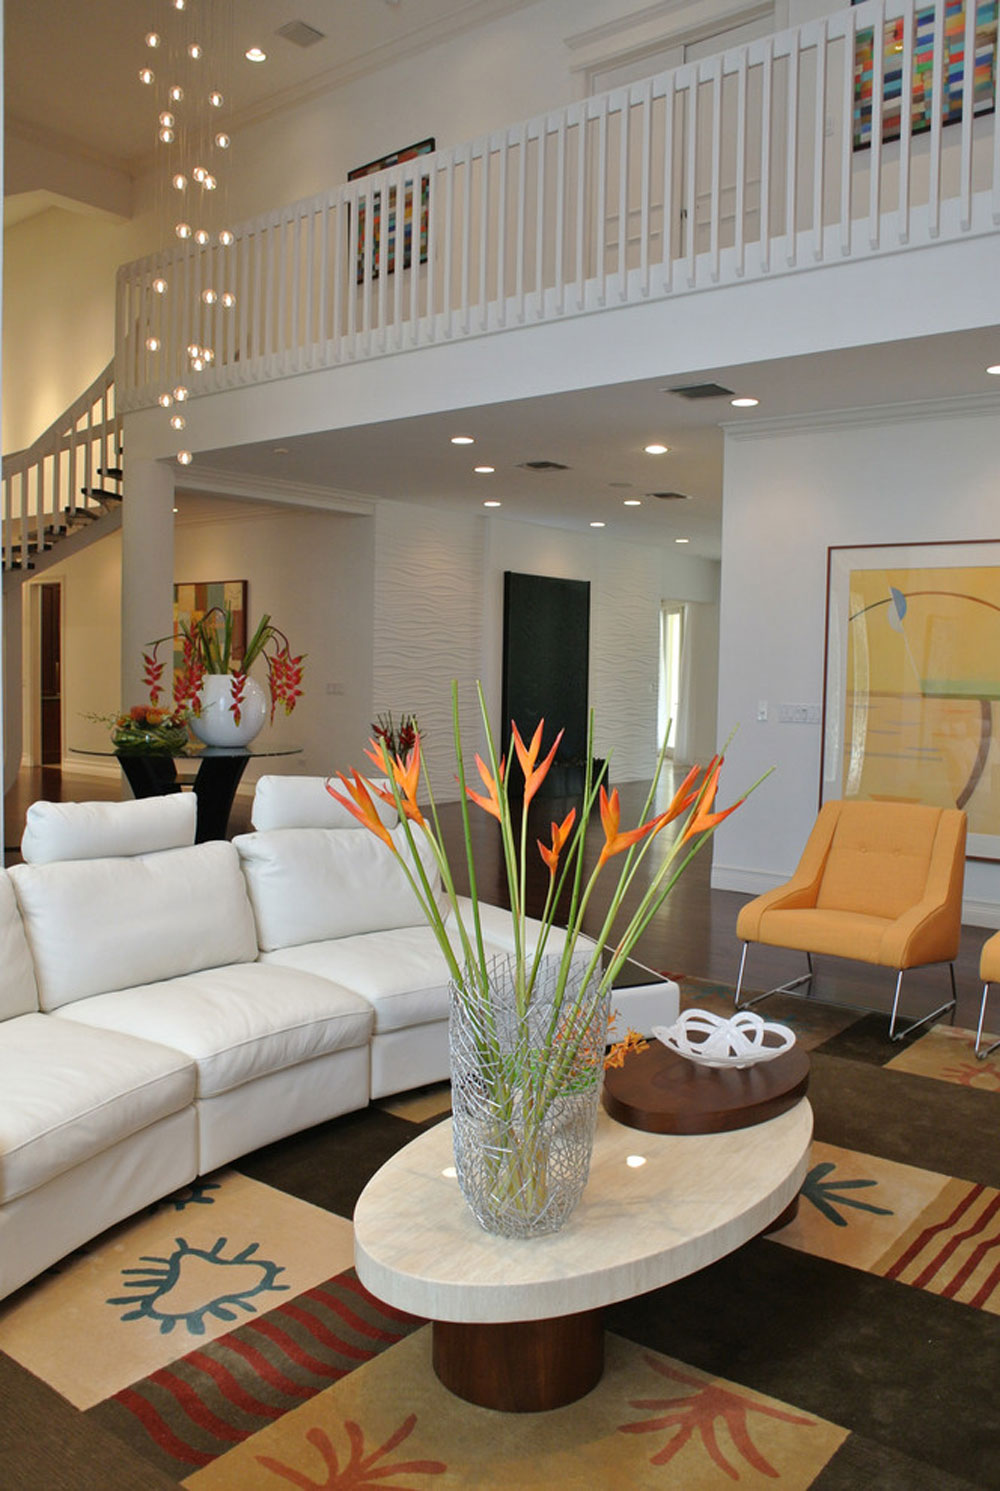 Cool houses: Ideas on how to design cool and amazing homes